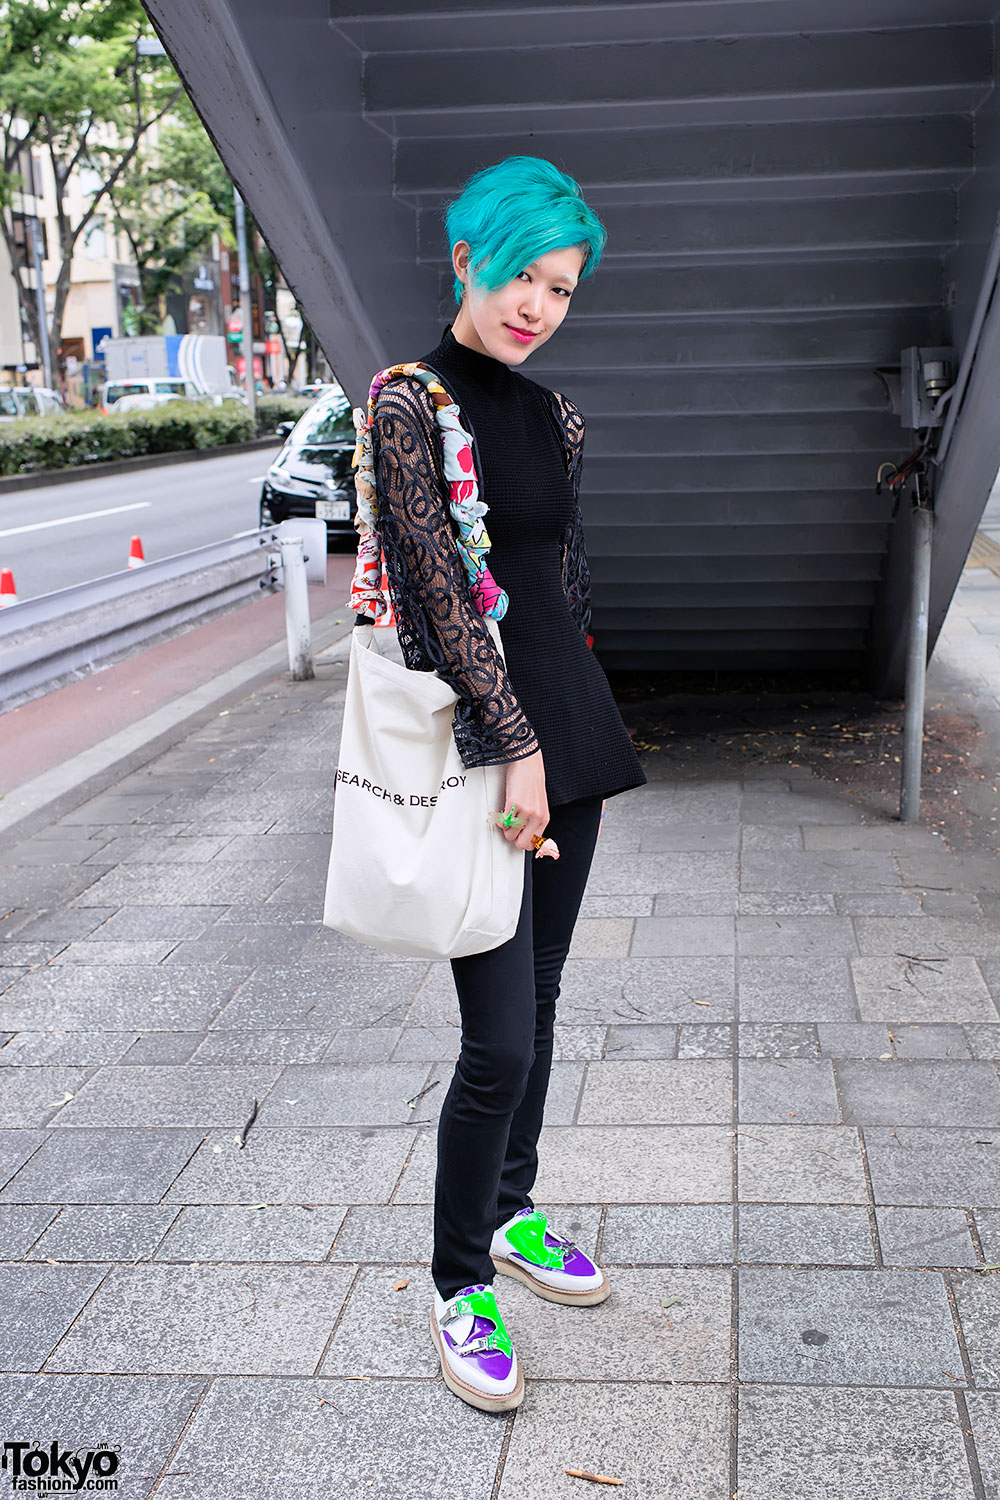 Blue Hair Search Destroy Bag Colorful Mouse Bracelet In Harajuku